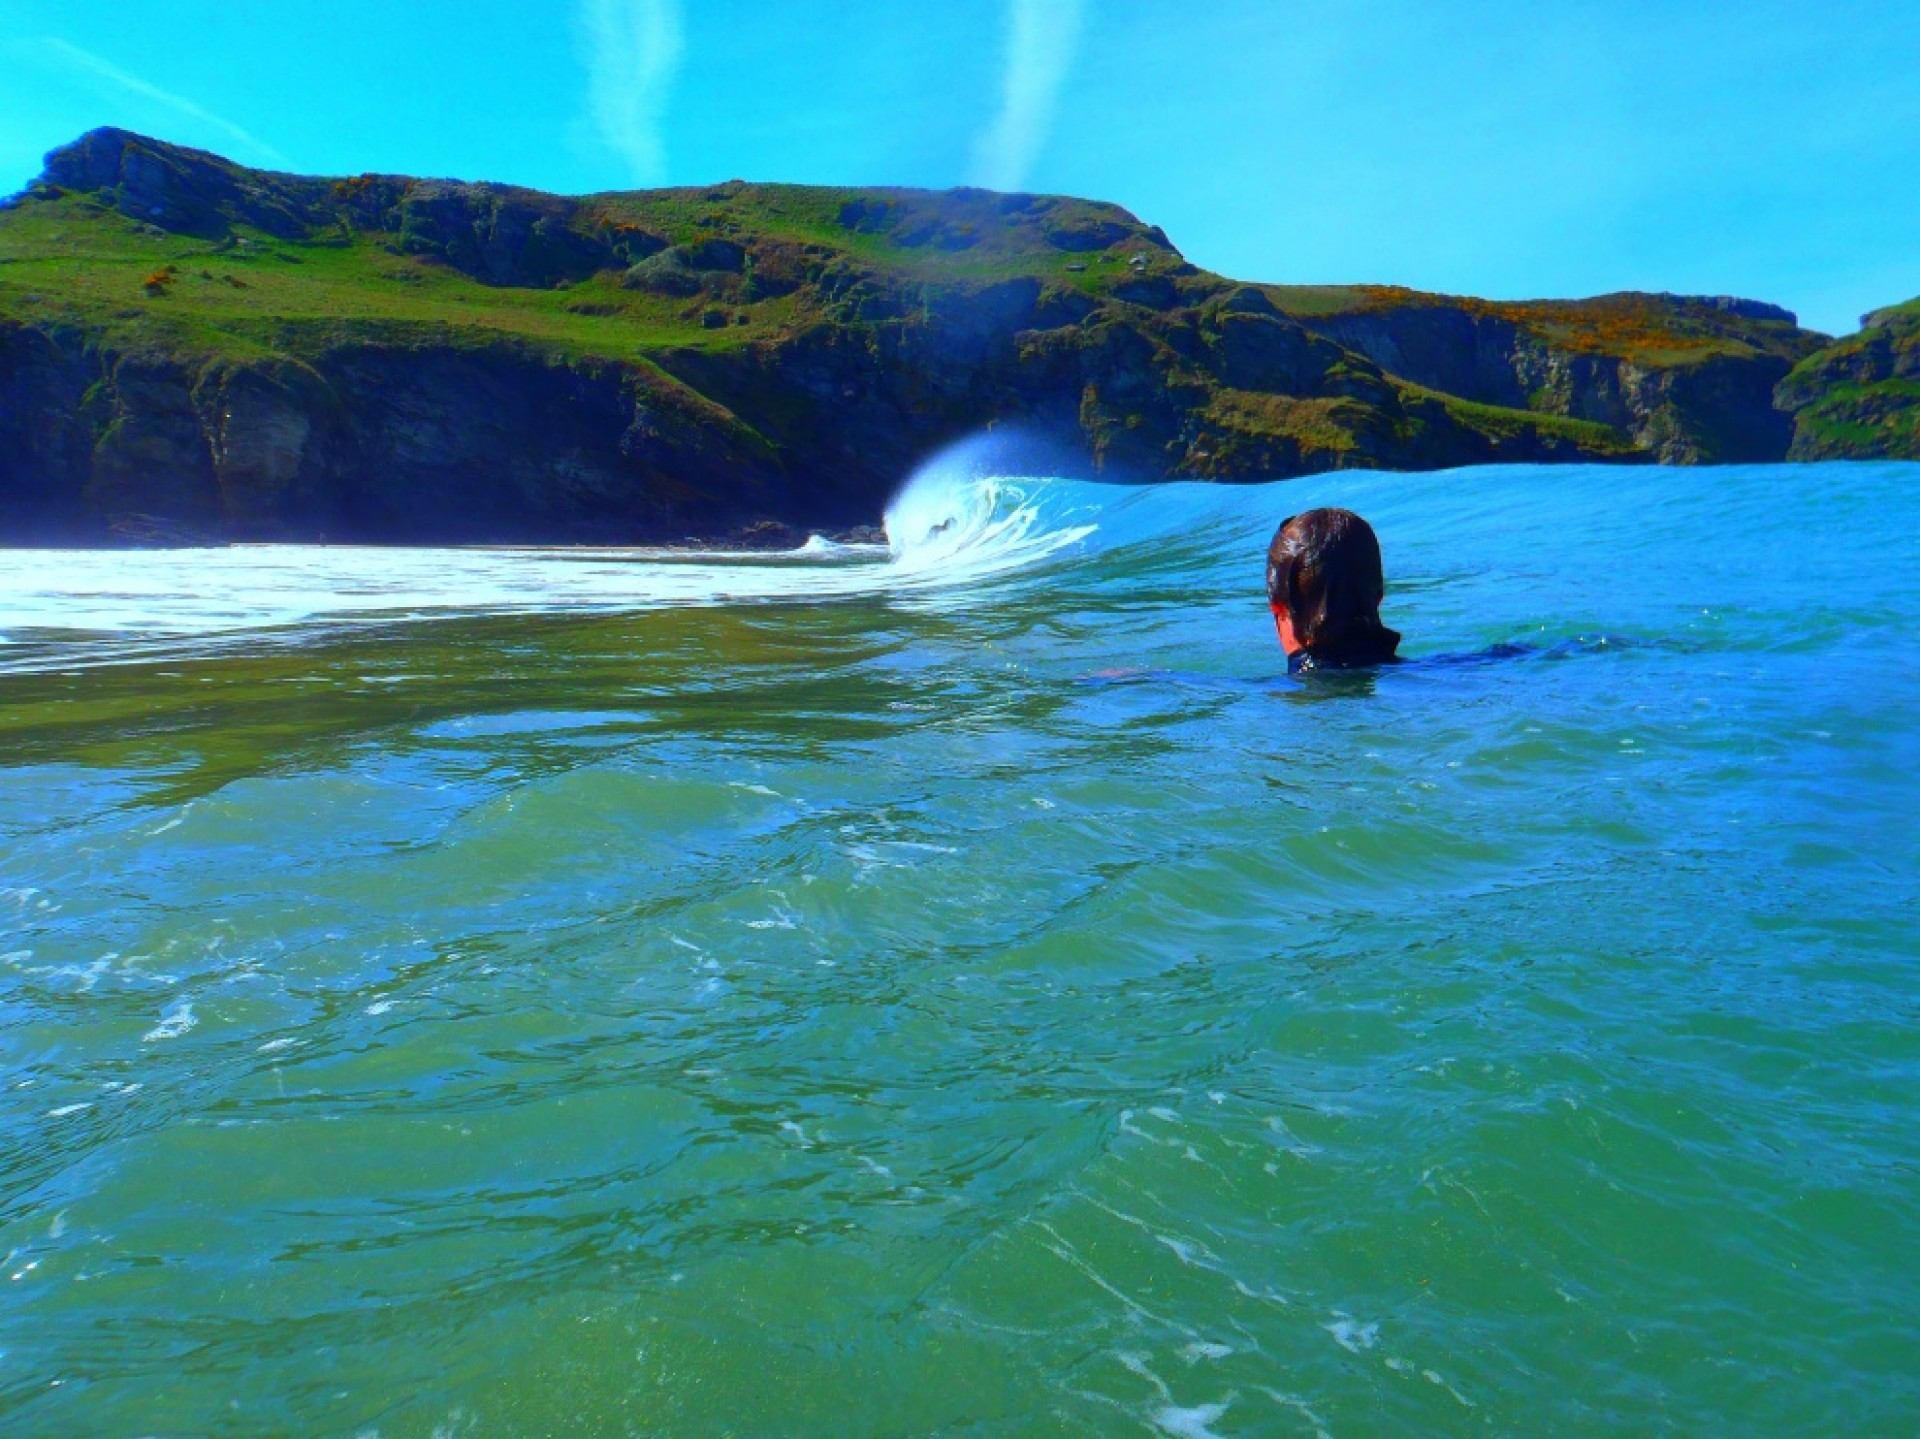 Gil Hogarth's photo of Bude - Crooklets